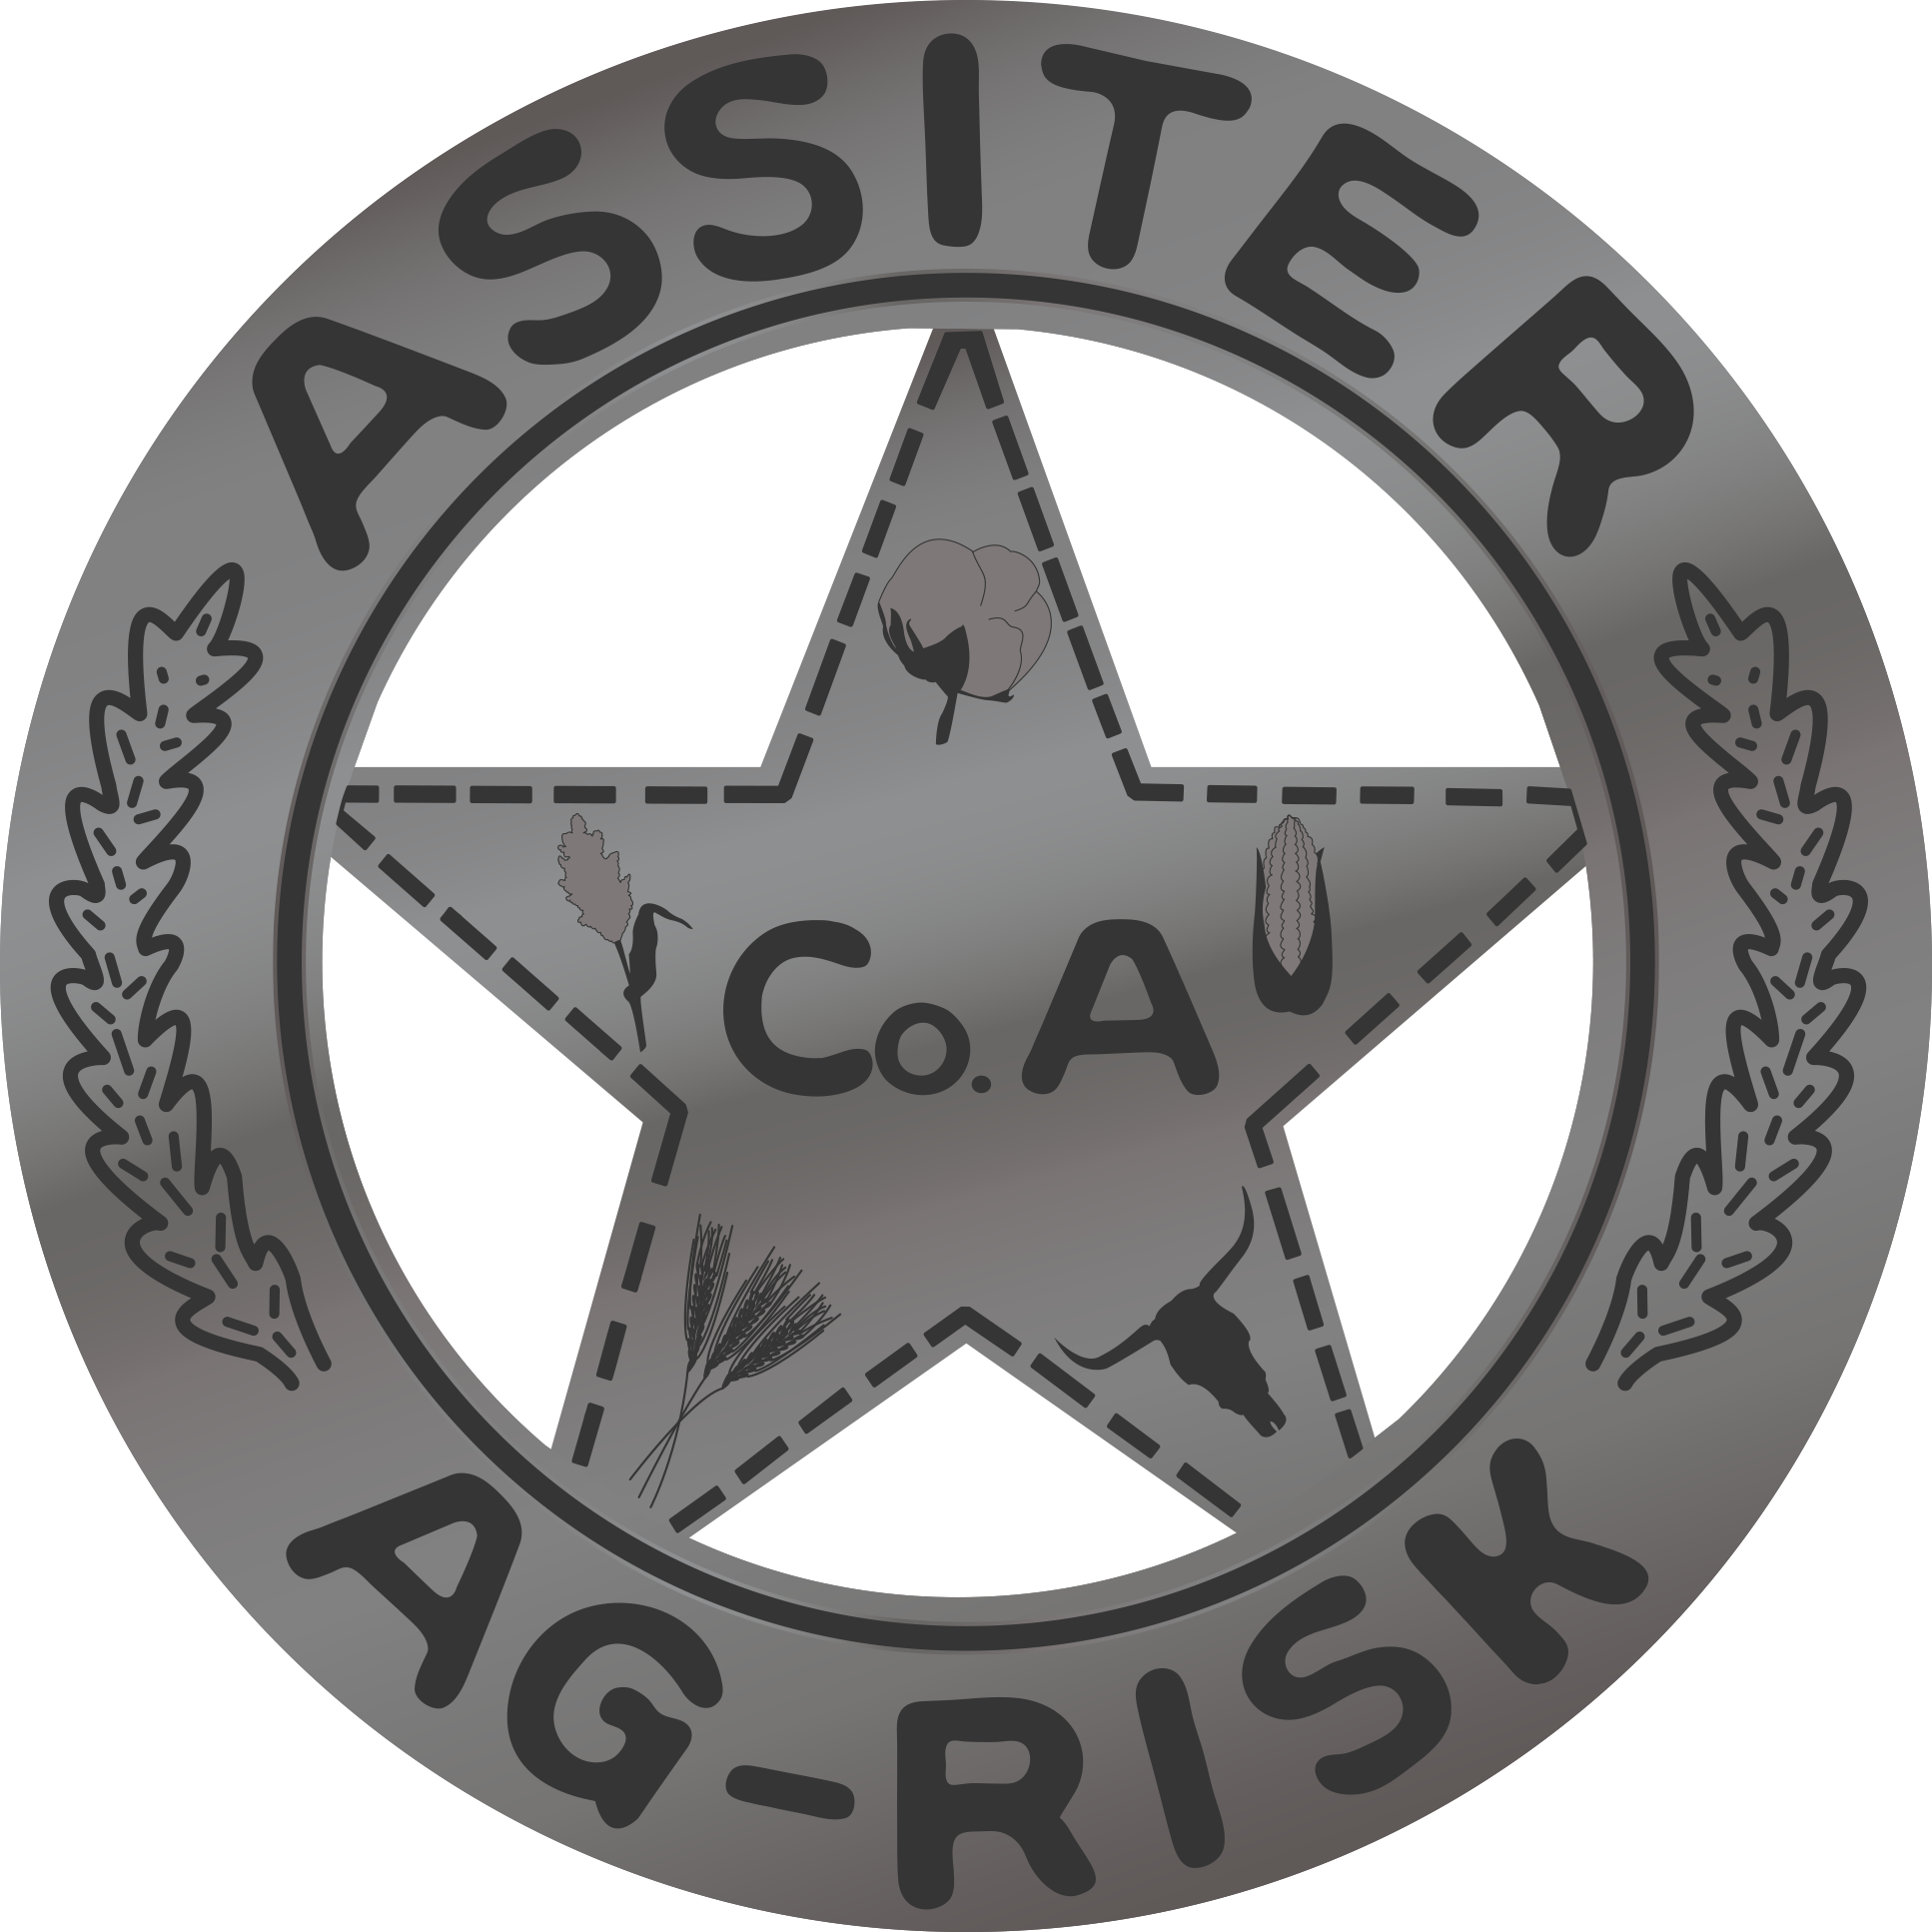 Assiter AG Risk